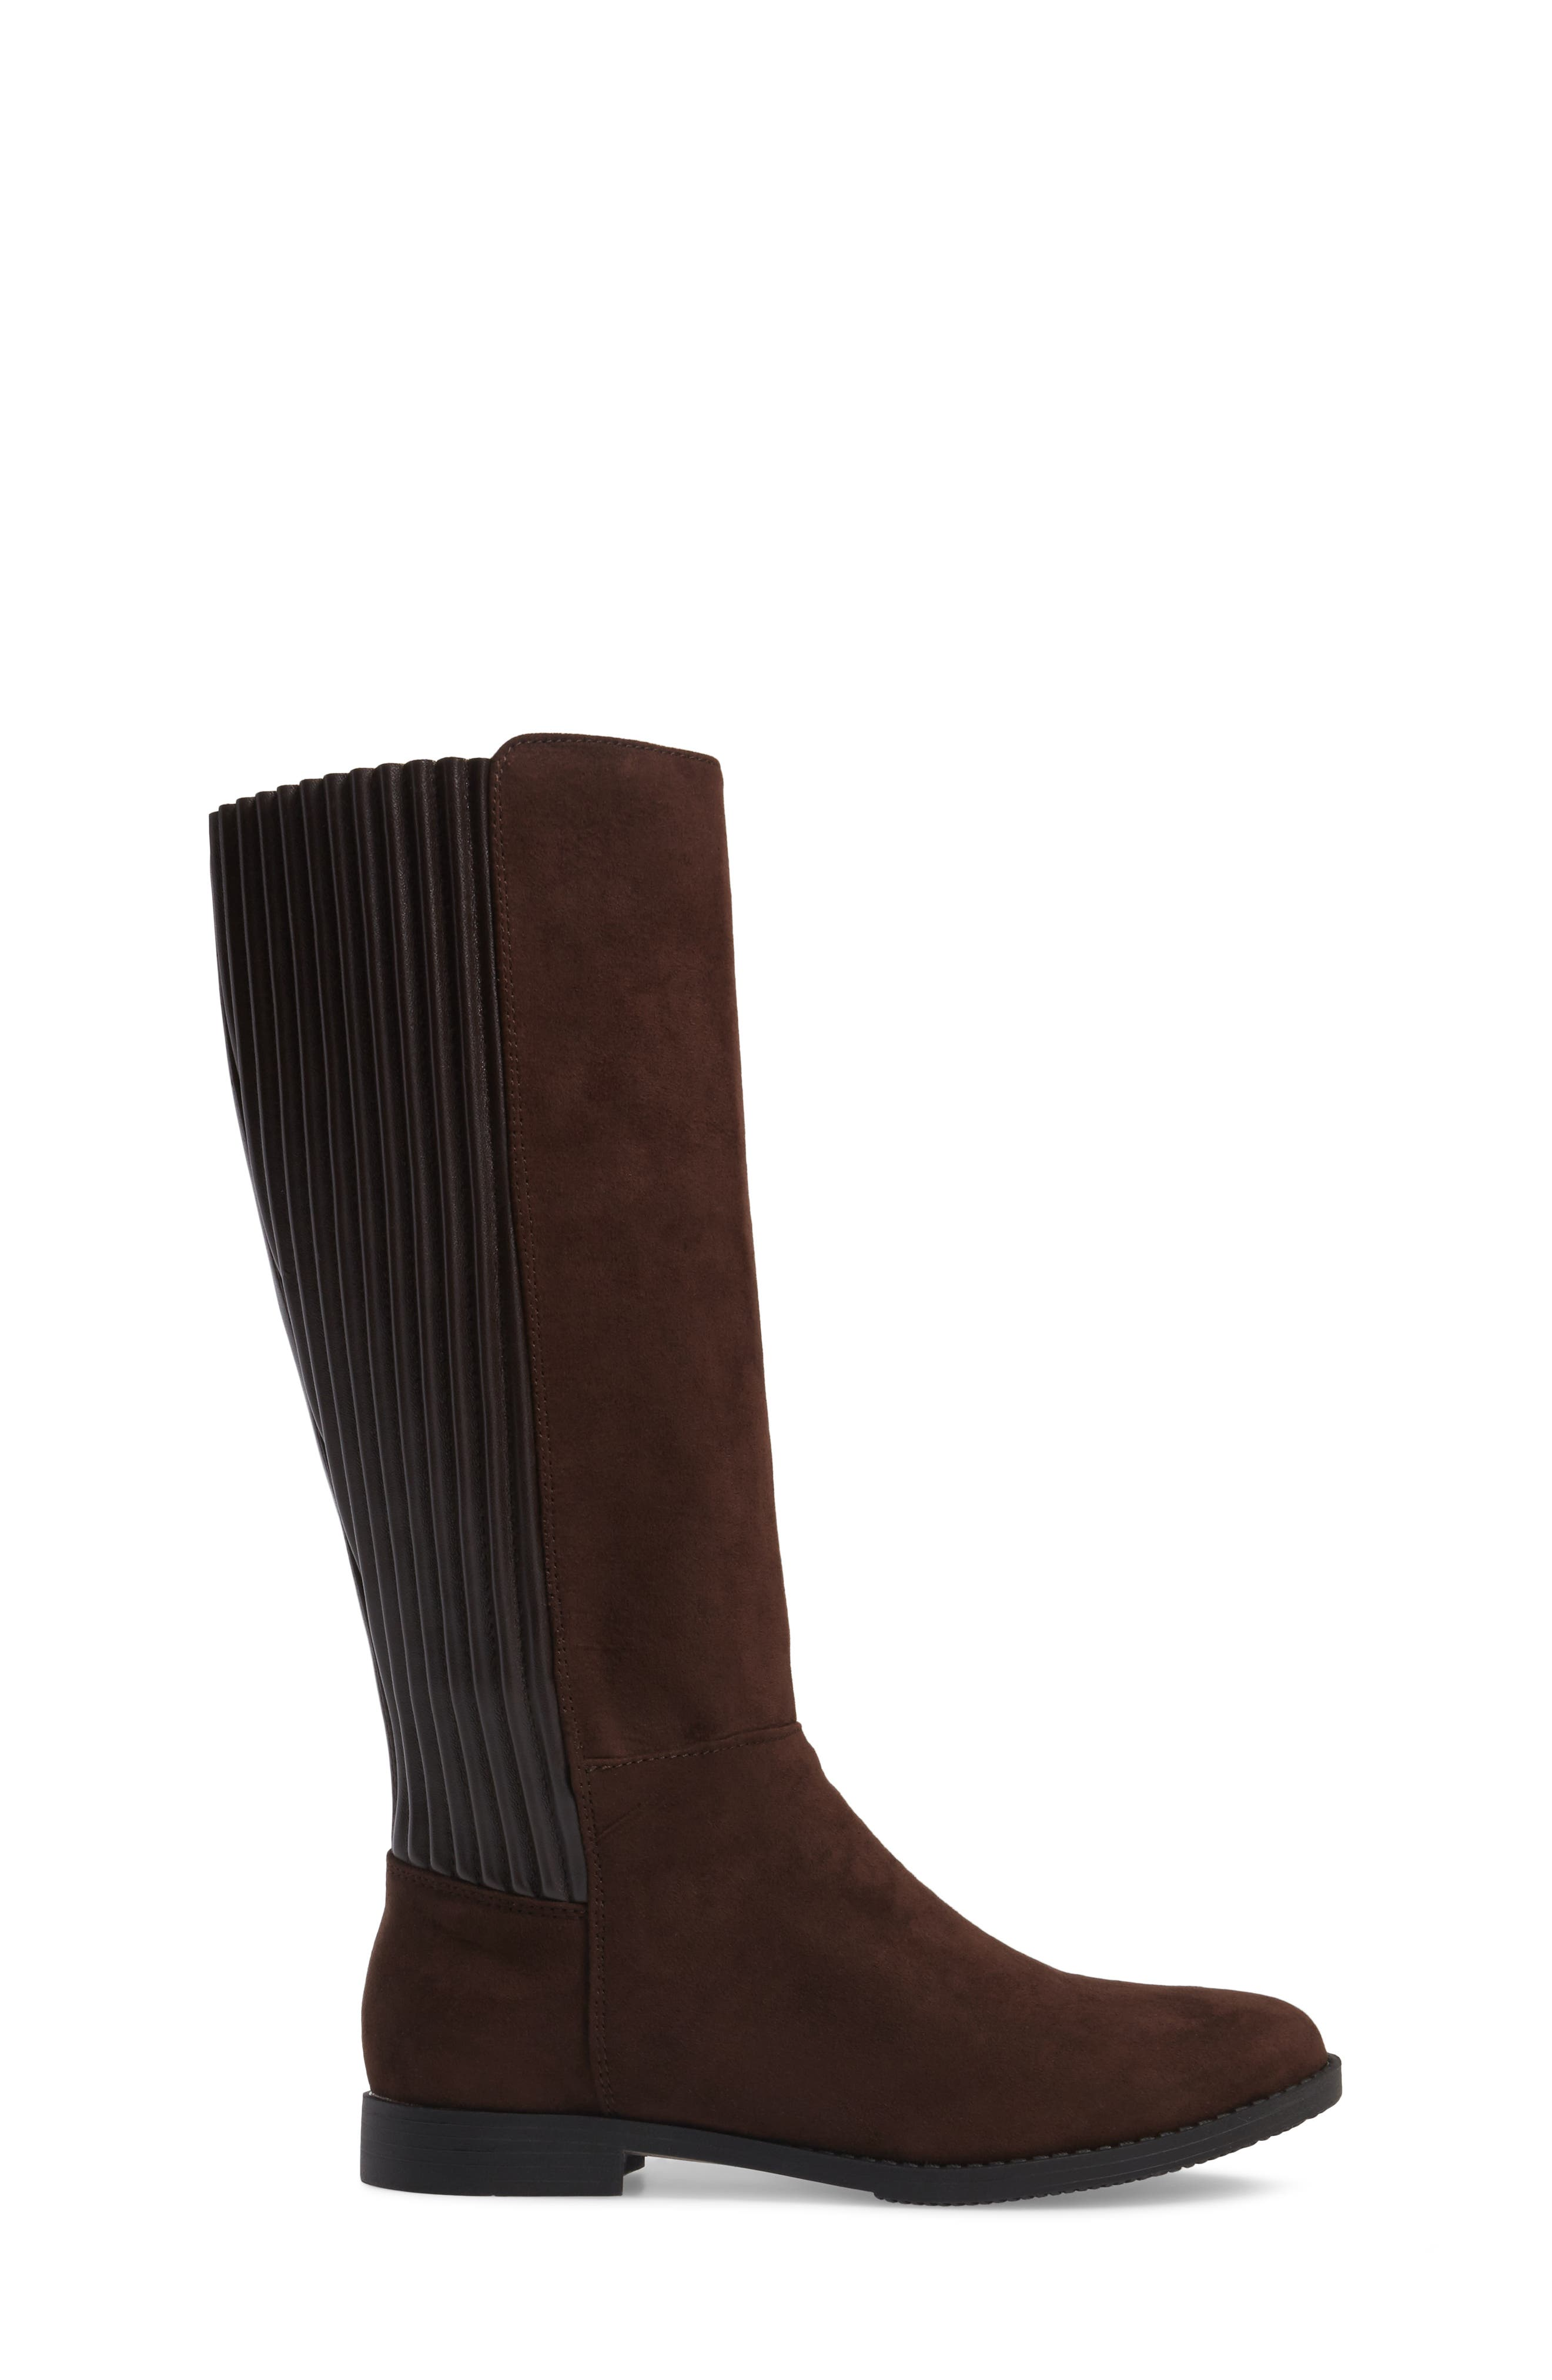 Kennedy Pleated Riding Boot,                             Alternate thumbnail 6, color,